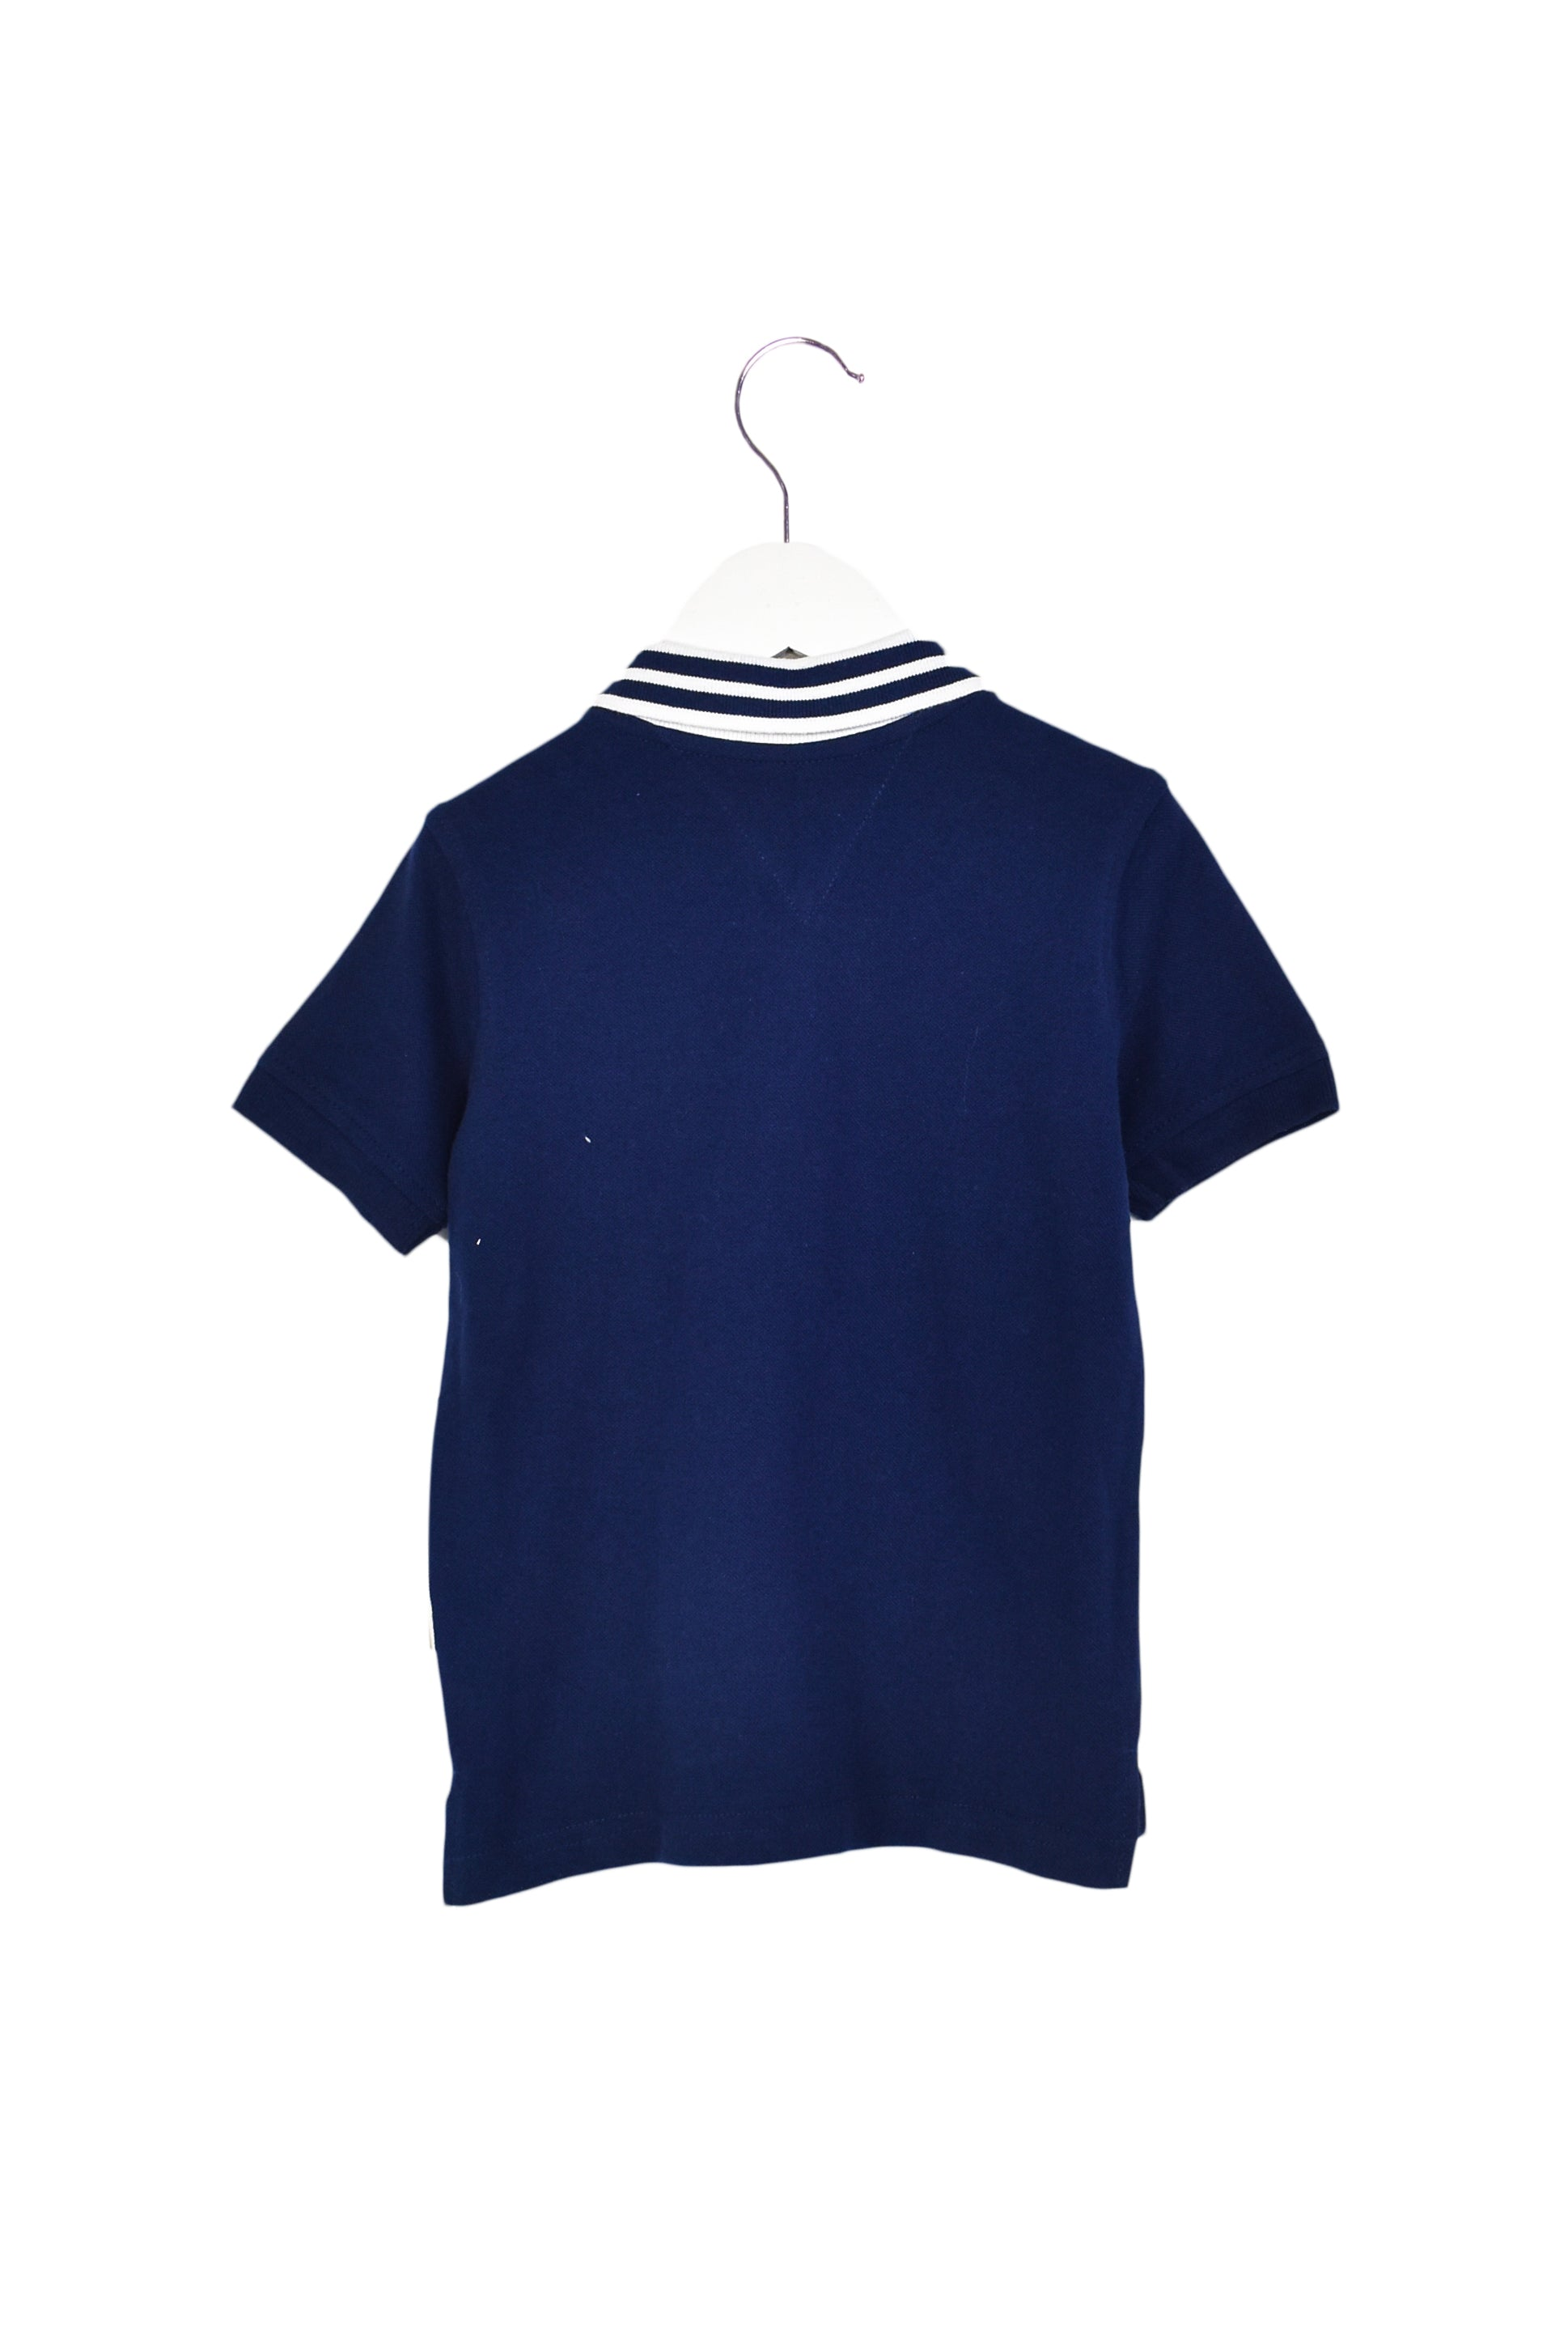 10013243 Tommy Hilfiger Kids~Polo 3T at Retykle